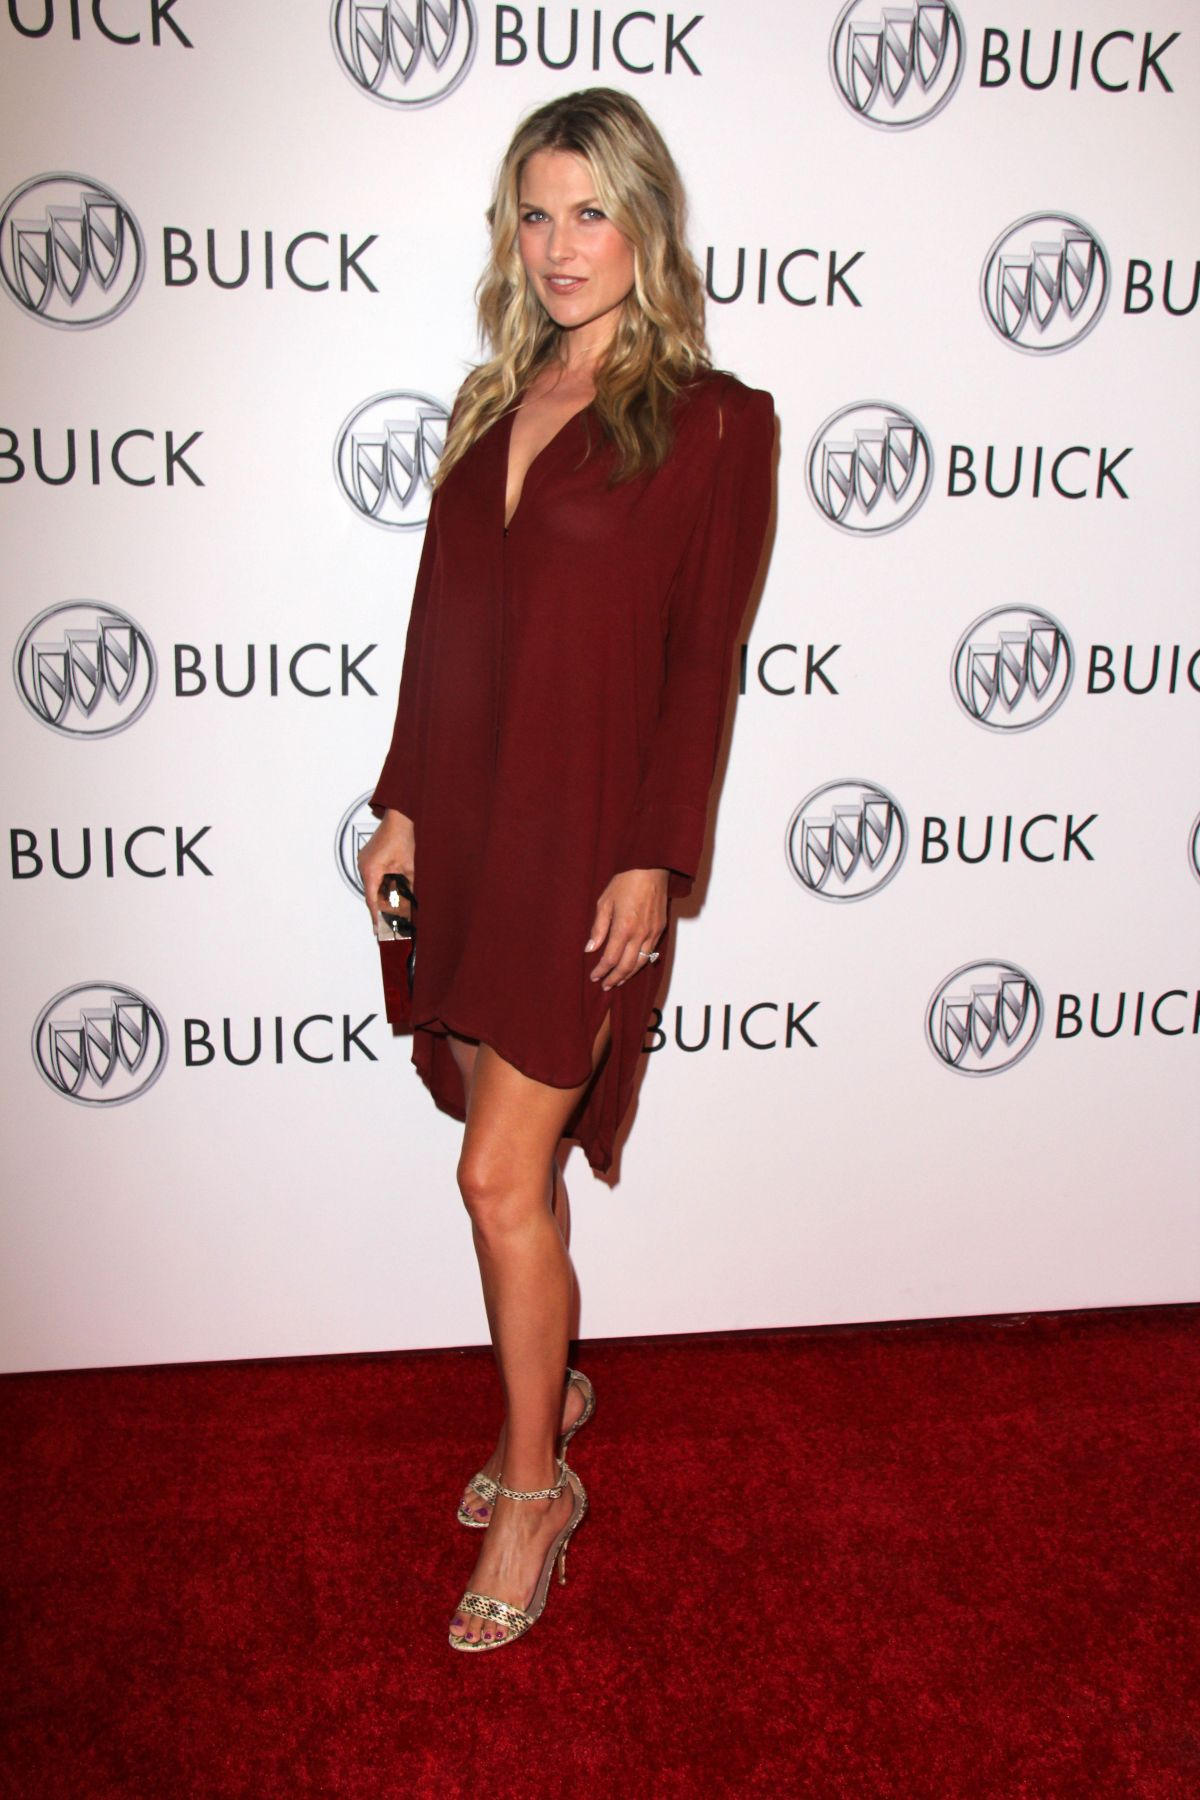 ali-larter-at-buick-24-hours-of-happiness-test-drive-launch-in-los-angeles_11.jpg